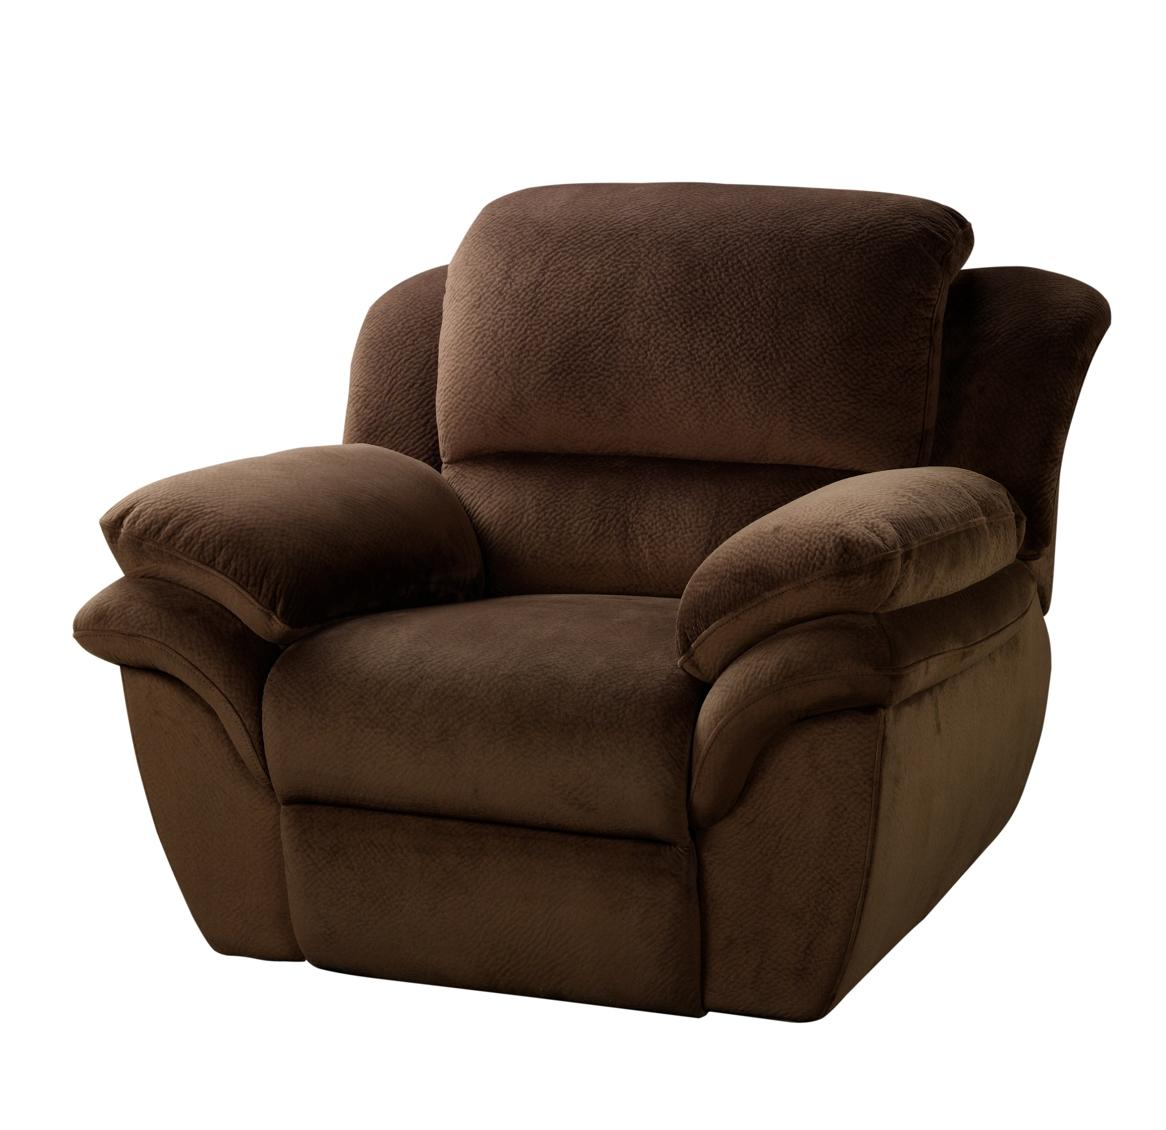 New Classic Pebble Power Recliner - Item Number: 22-897-15-PSH